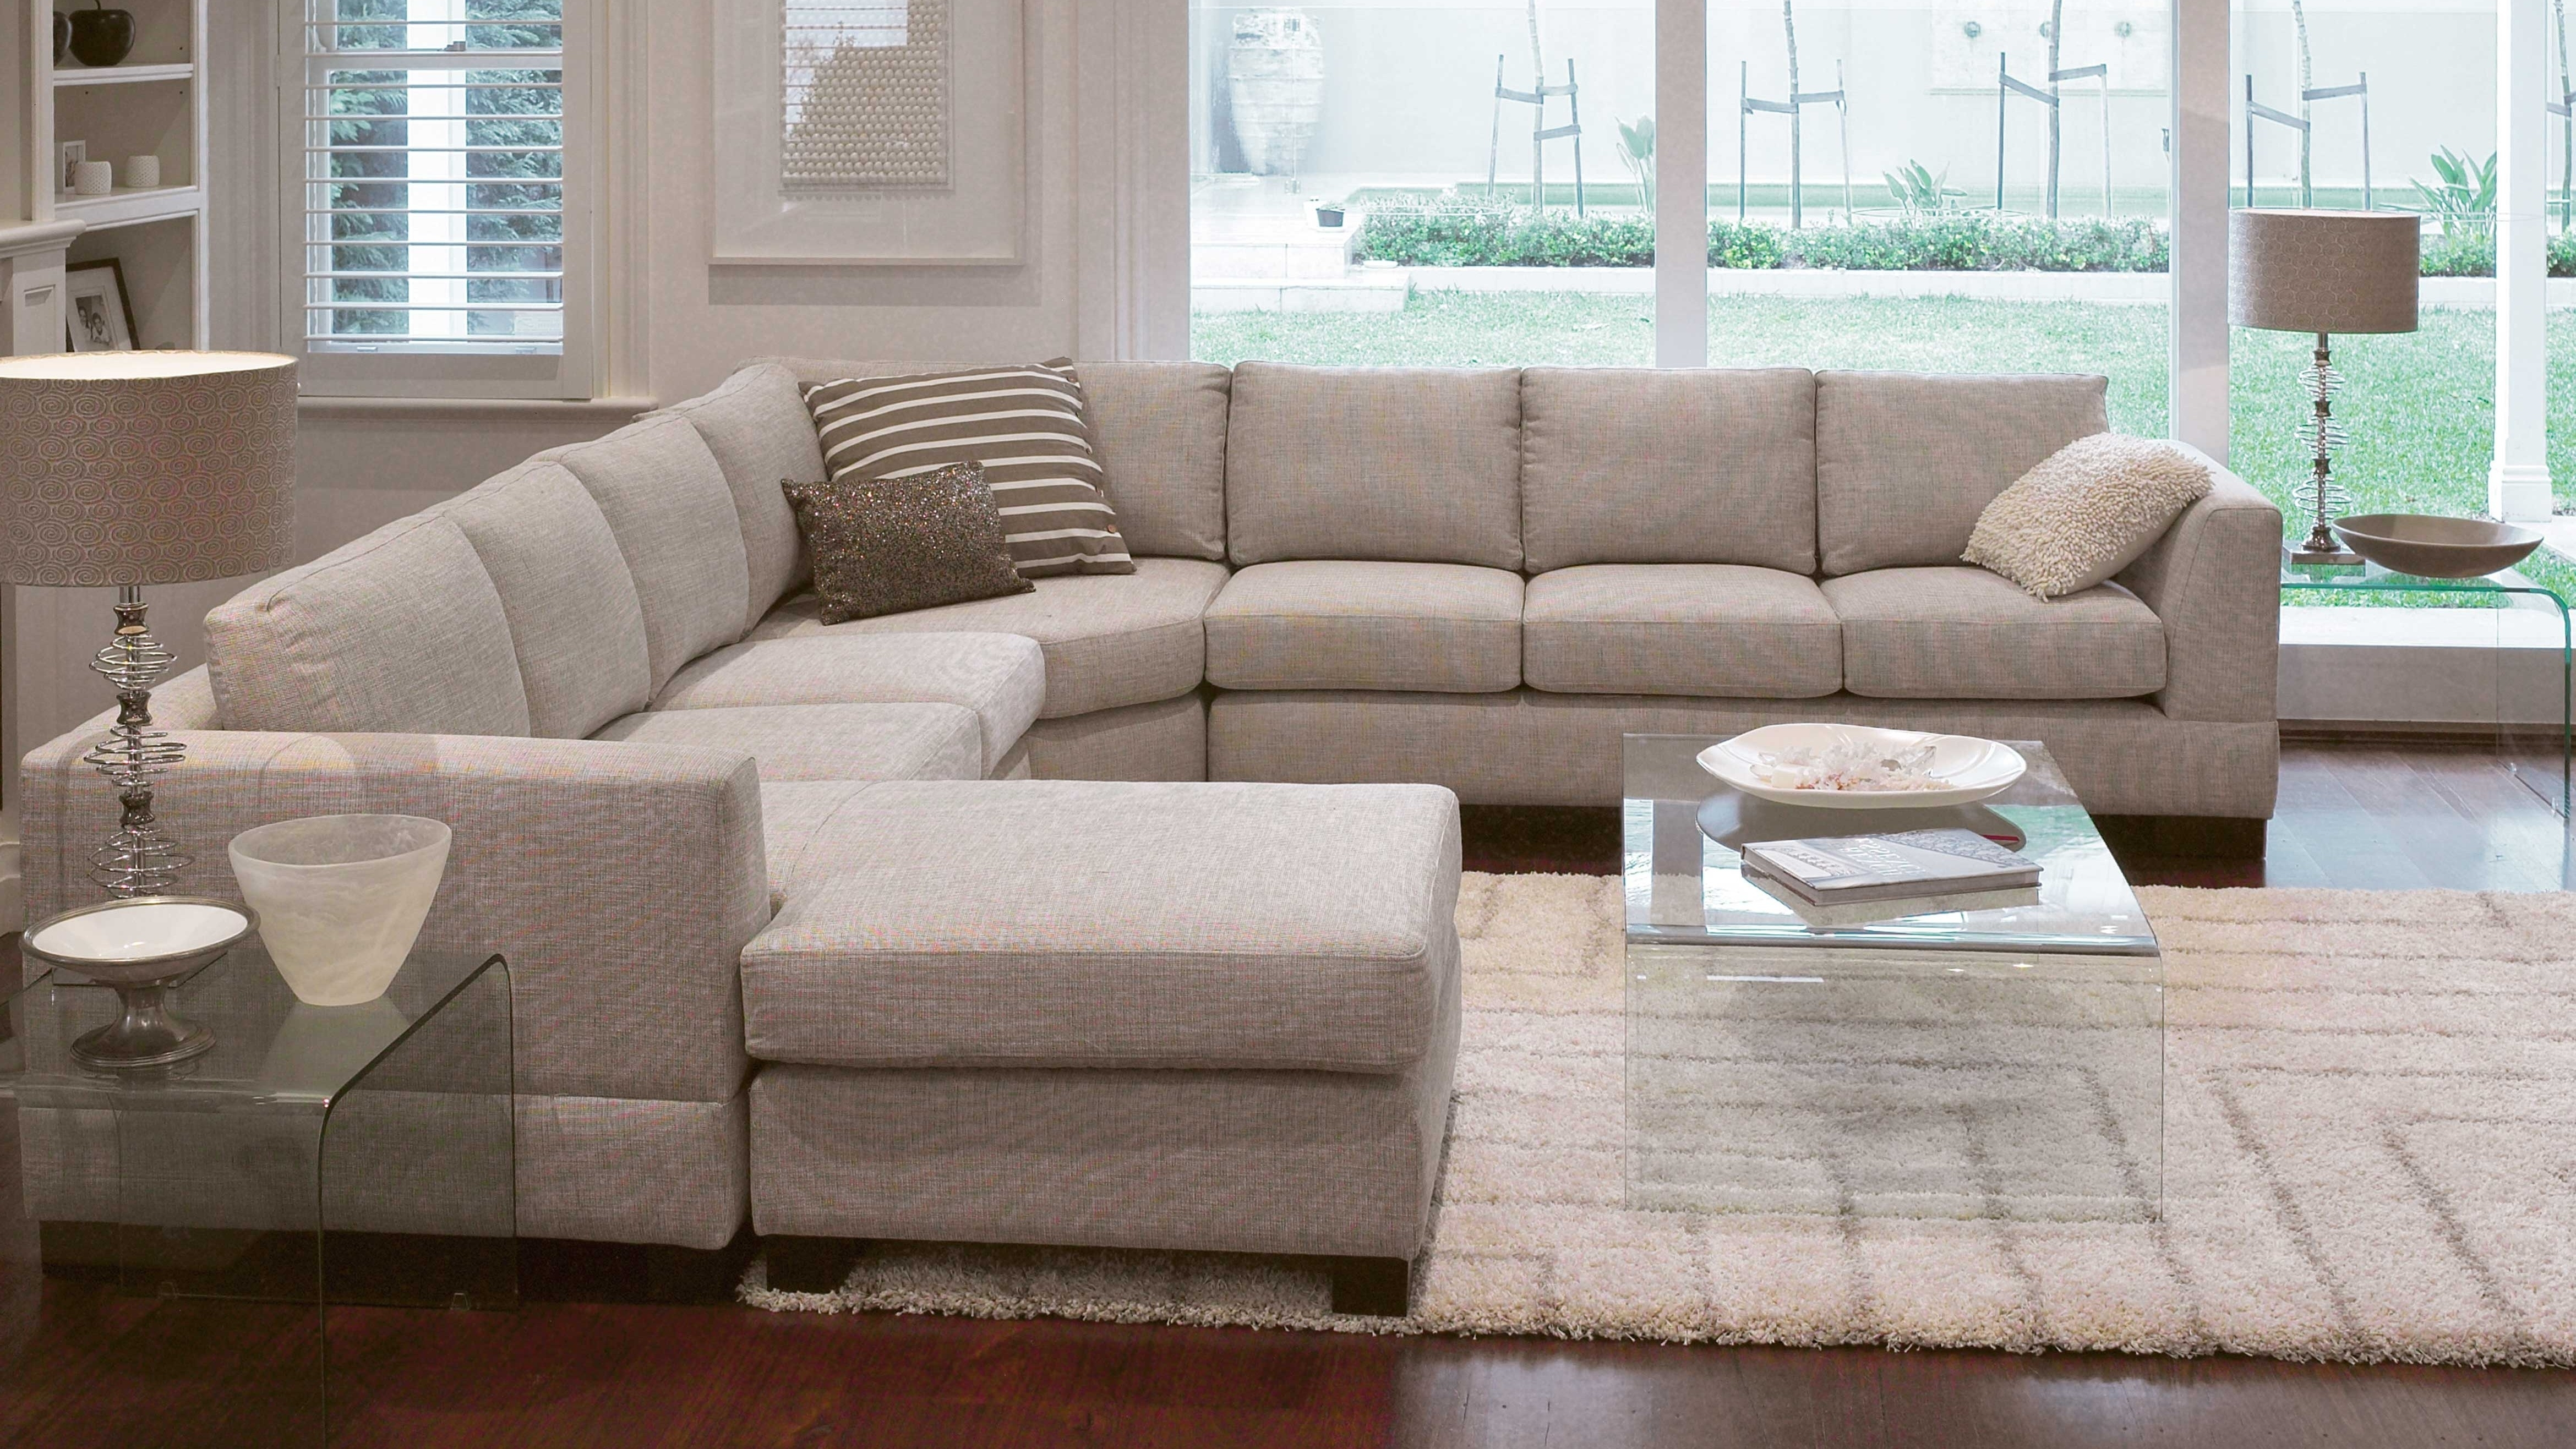 Nz Sectional Sofas Pertaining To Most Popular Couch With Storage And Bed Sofa Bed Gumtree Sectional With Storage (View 11 of 15)